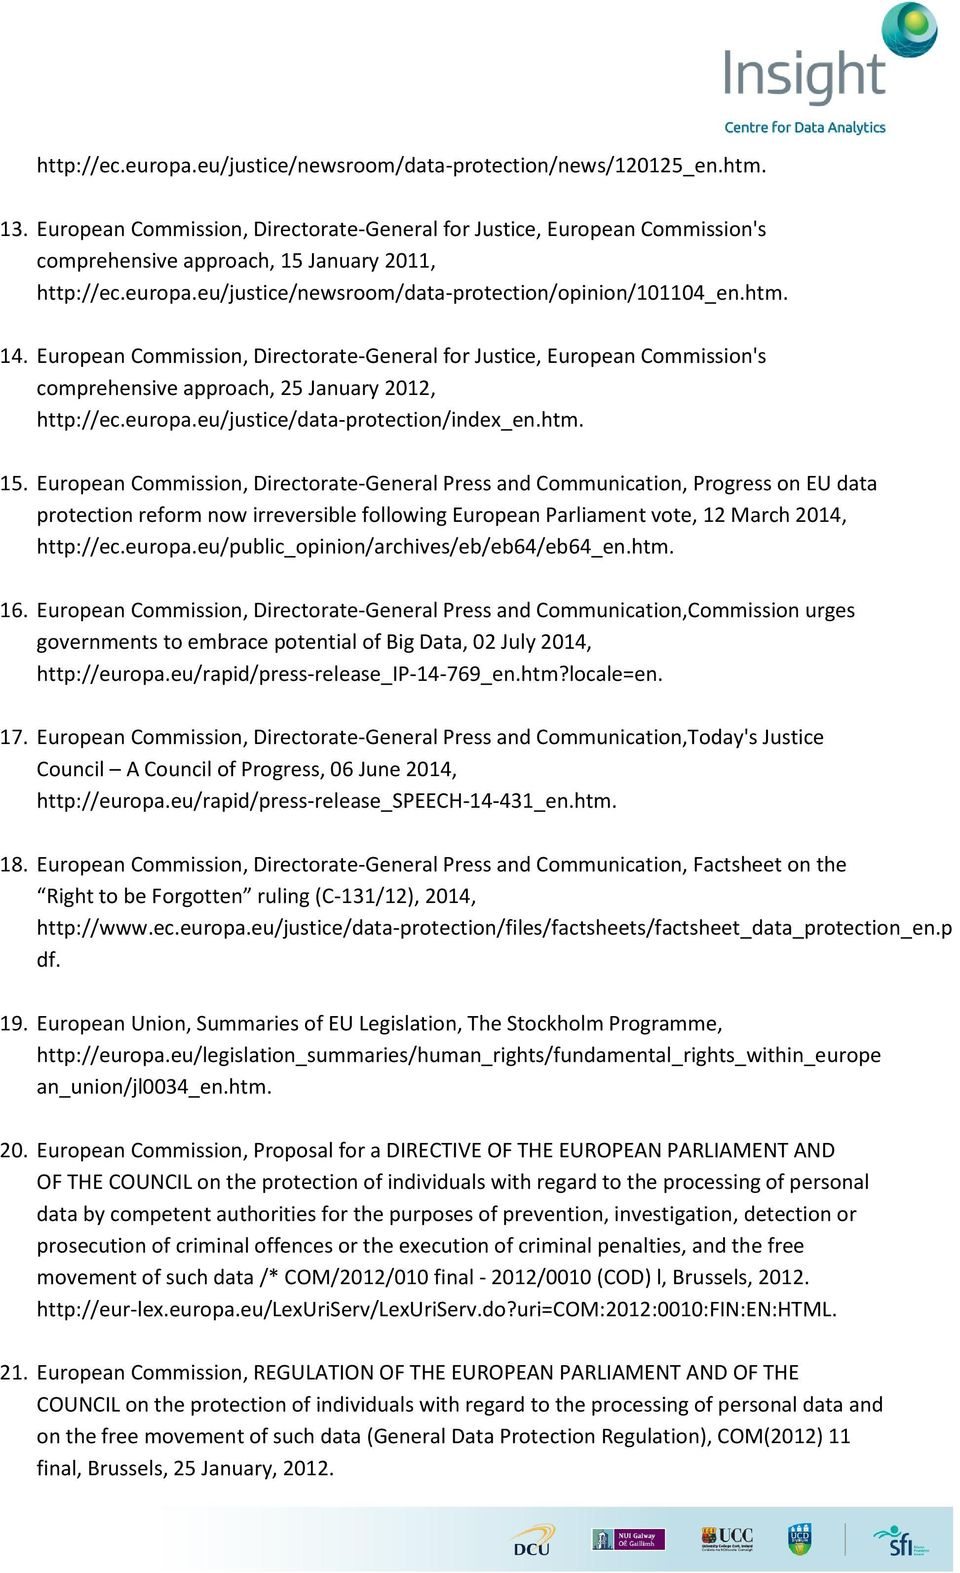 European Commission, Directorate-General for Justice, European Commission's comprehensive approach, 25 January 2012, http://ec.europa.eu/justice/data-protection/index_en.htm. 15.